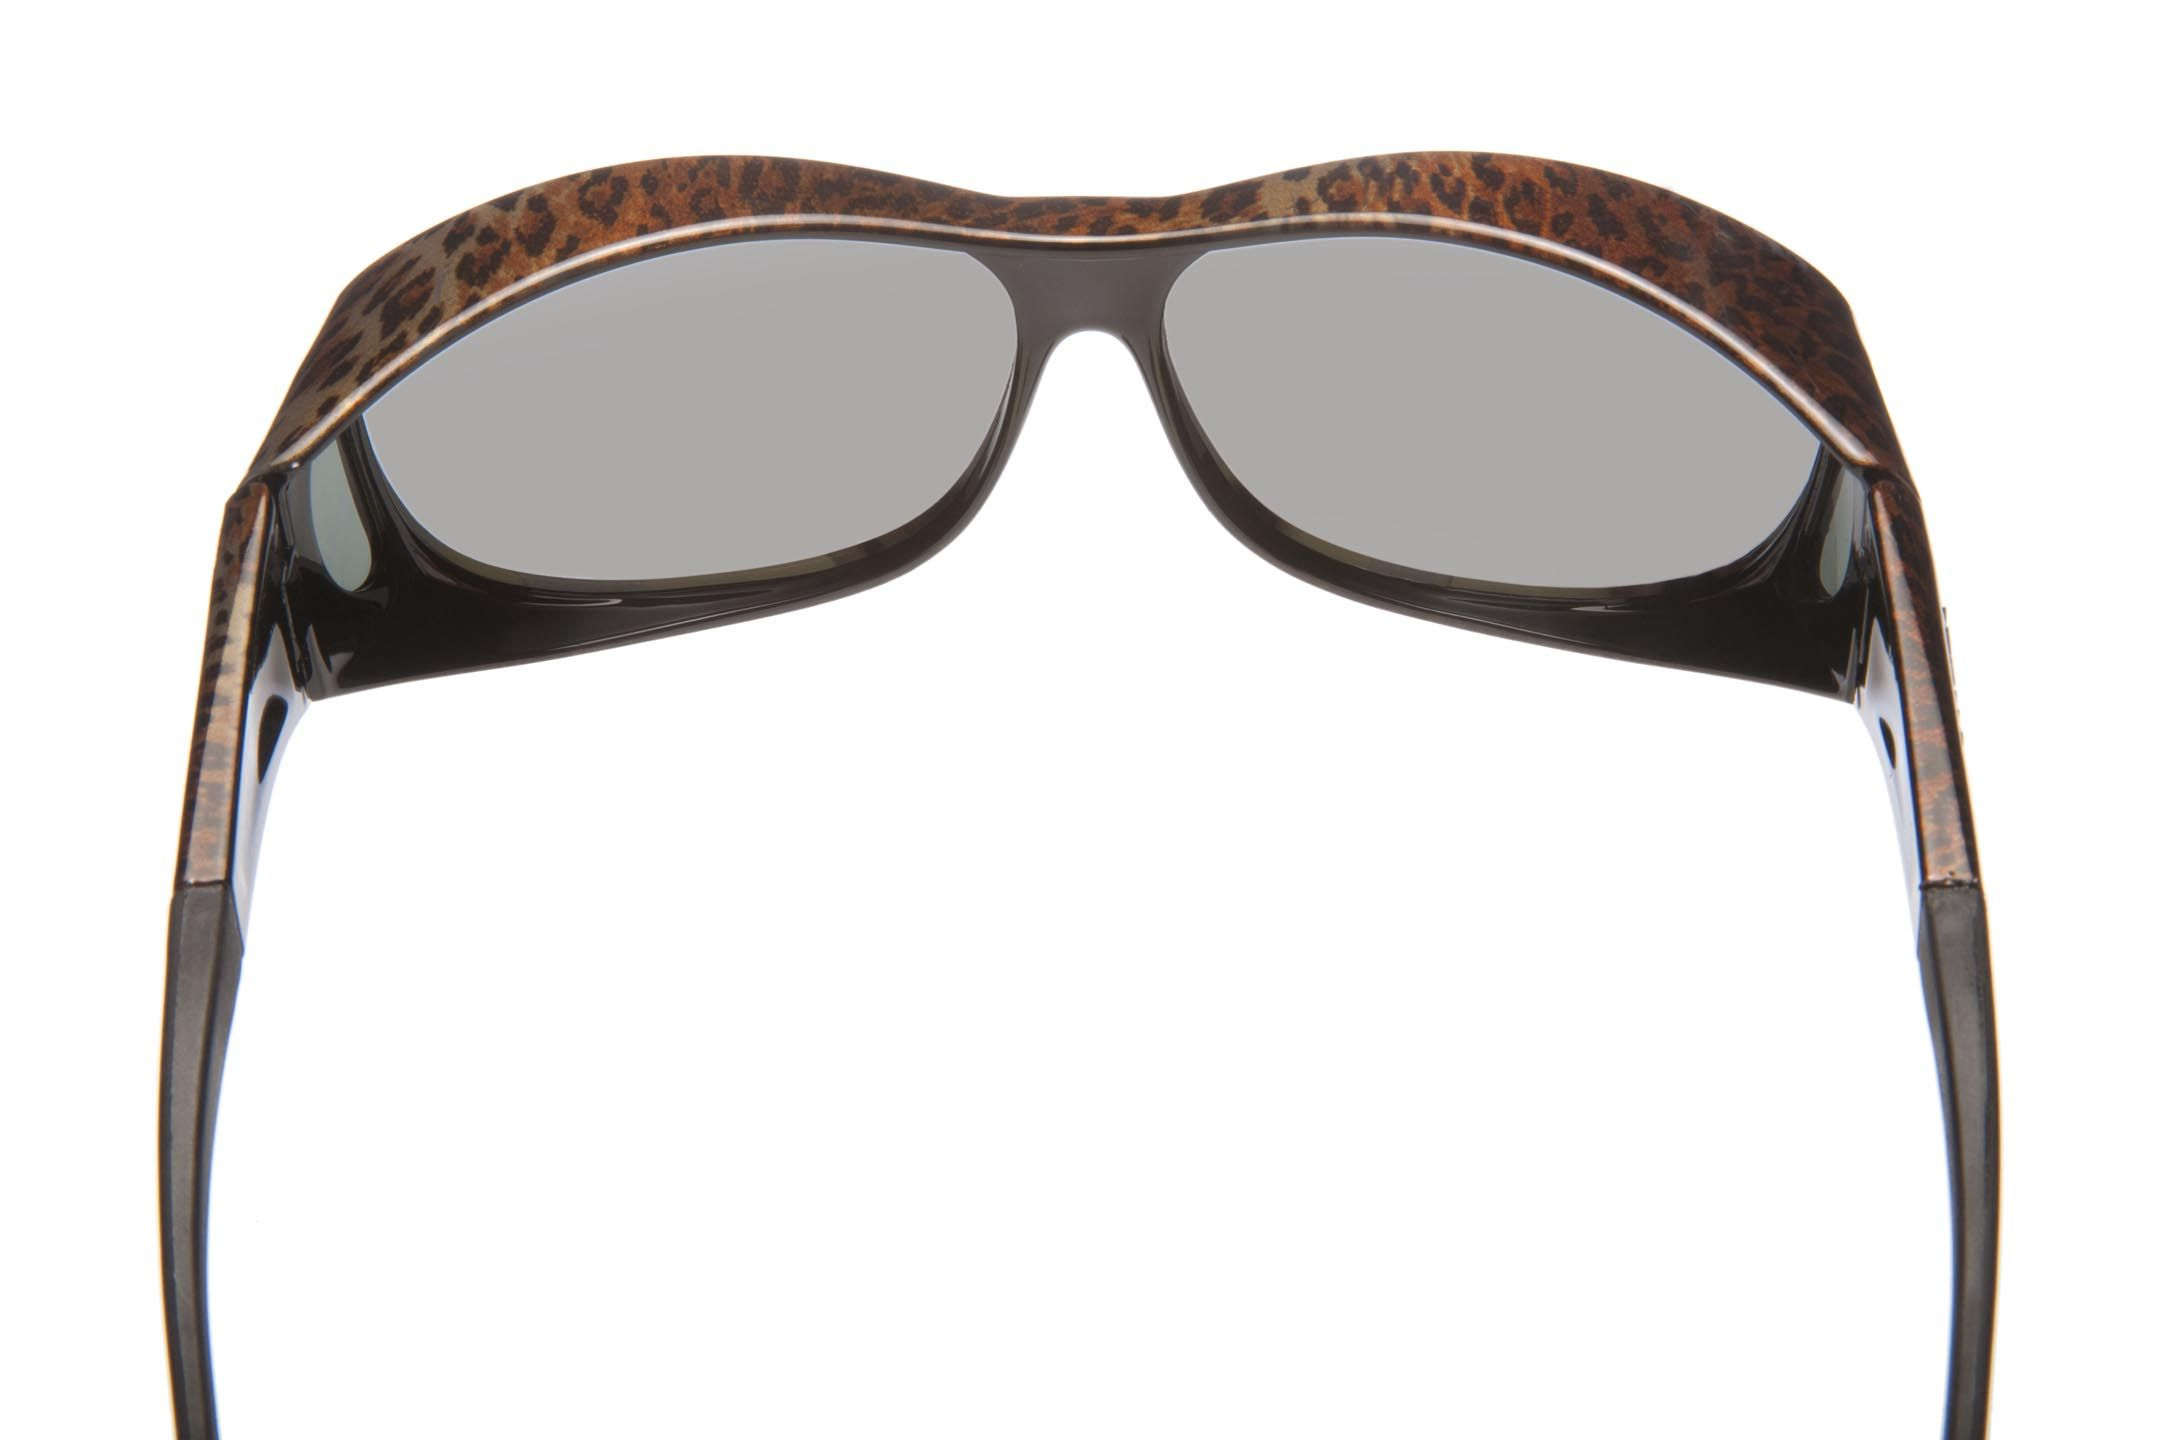 e311e6bd89 HAVEN Fits Over sunglasses for eyeglass wearers with animal print. QVC.com